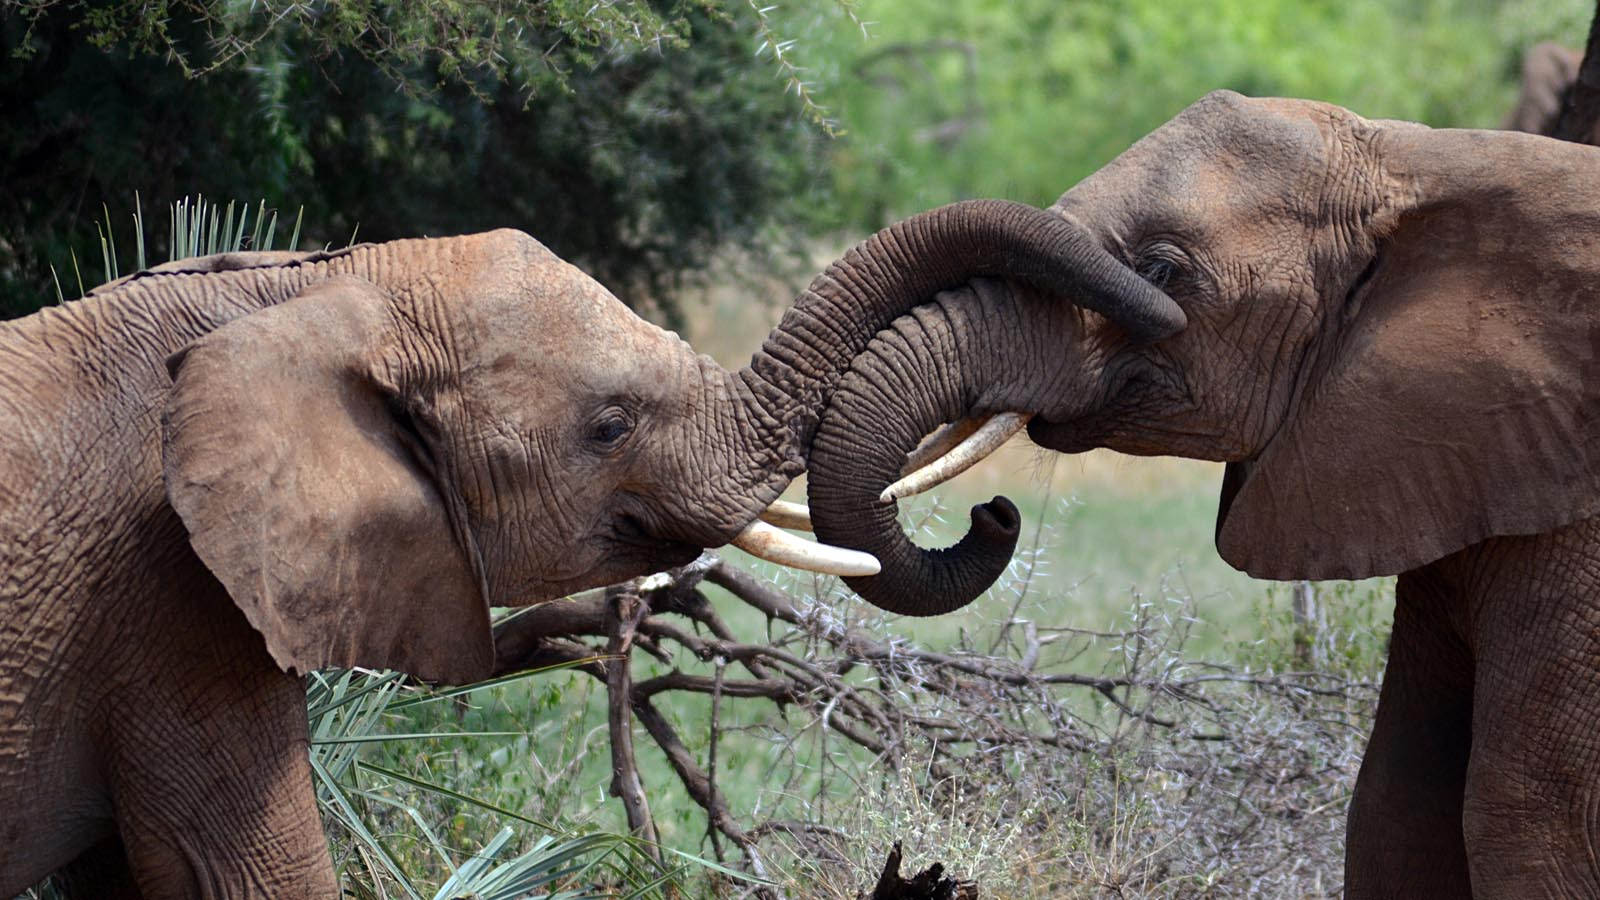 Young elephants interacting in Samburu National Park, Kenya